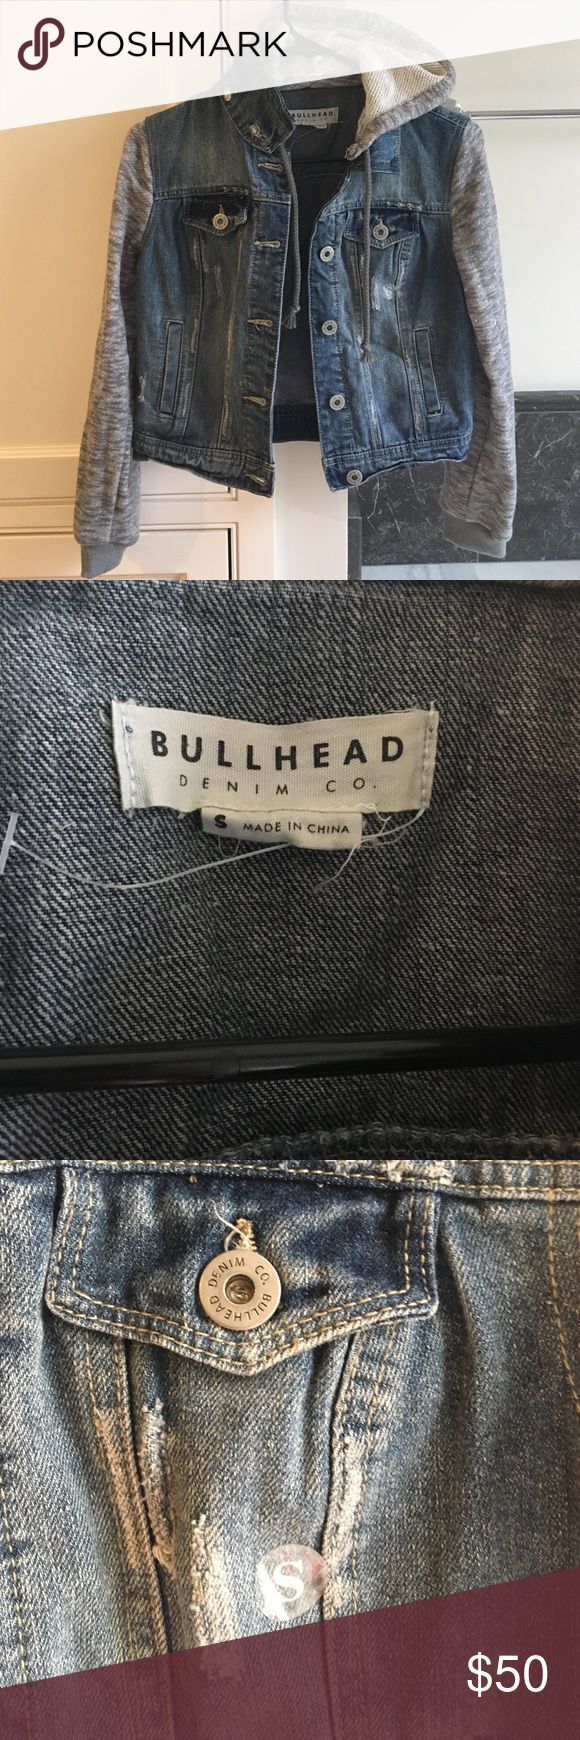 Pacsun bullhead denim co. Size small. Hooded jean jacket never worn once but lost the tag. There are buttons to take off the hood also. Willing to negotiate price, Bullhead Jackets & Coats Jean Jackets